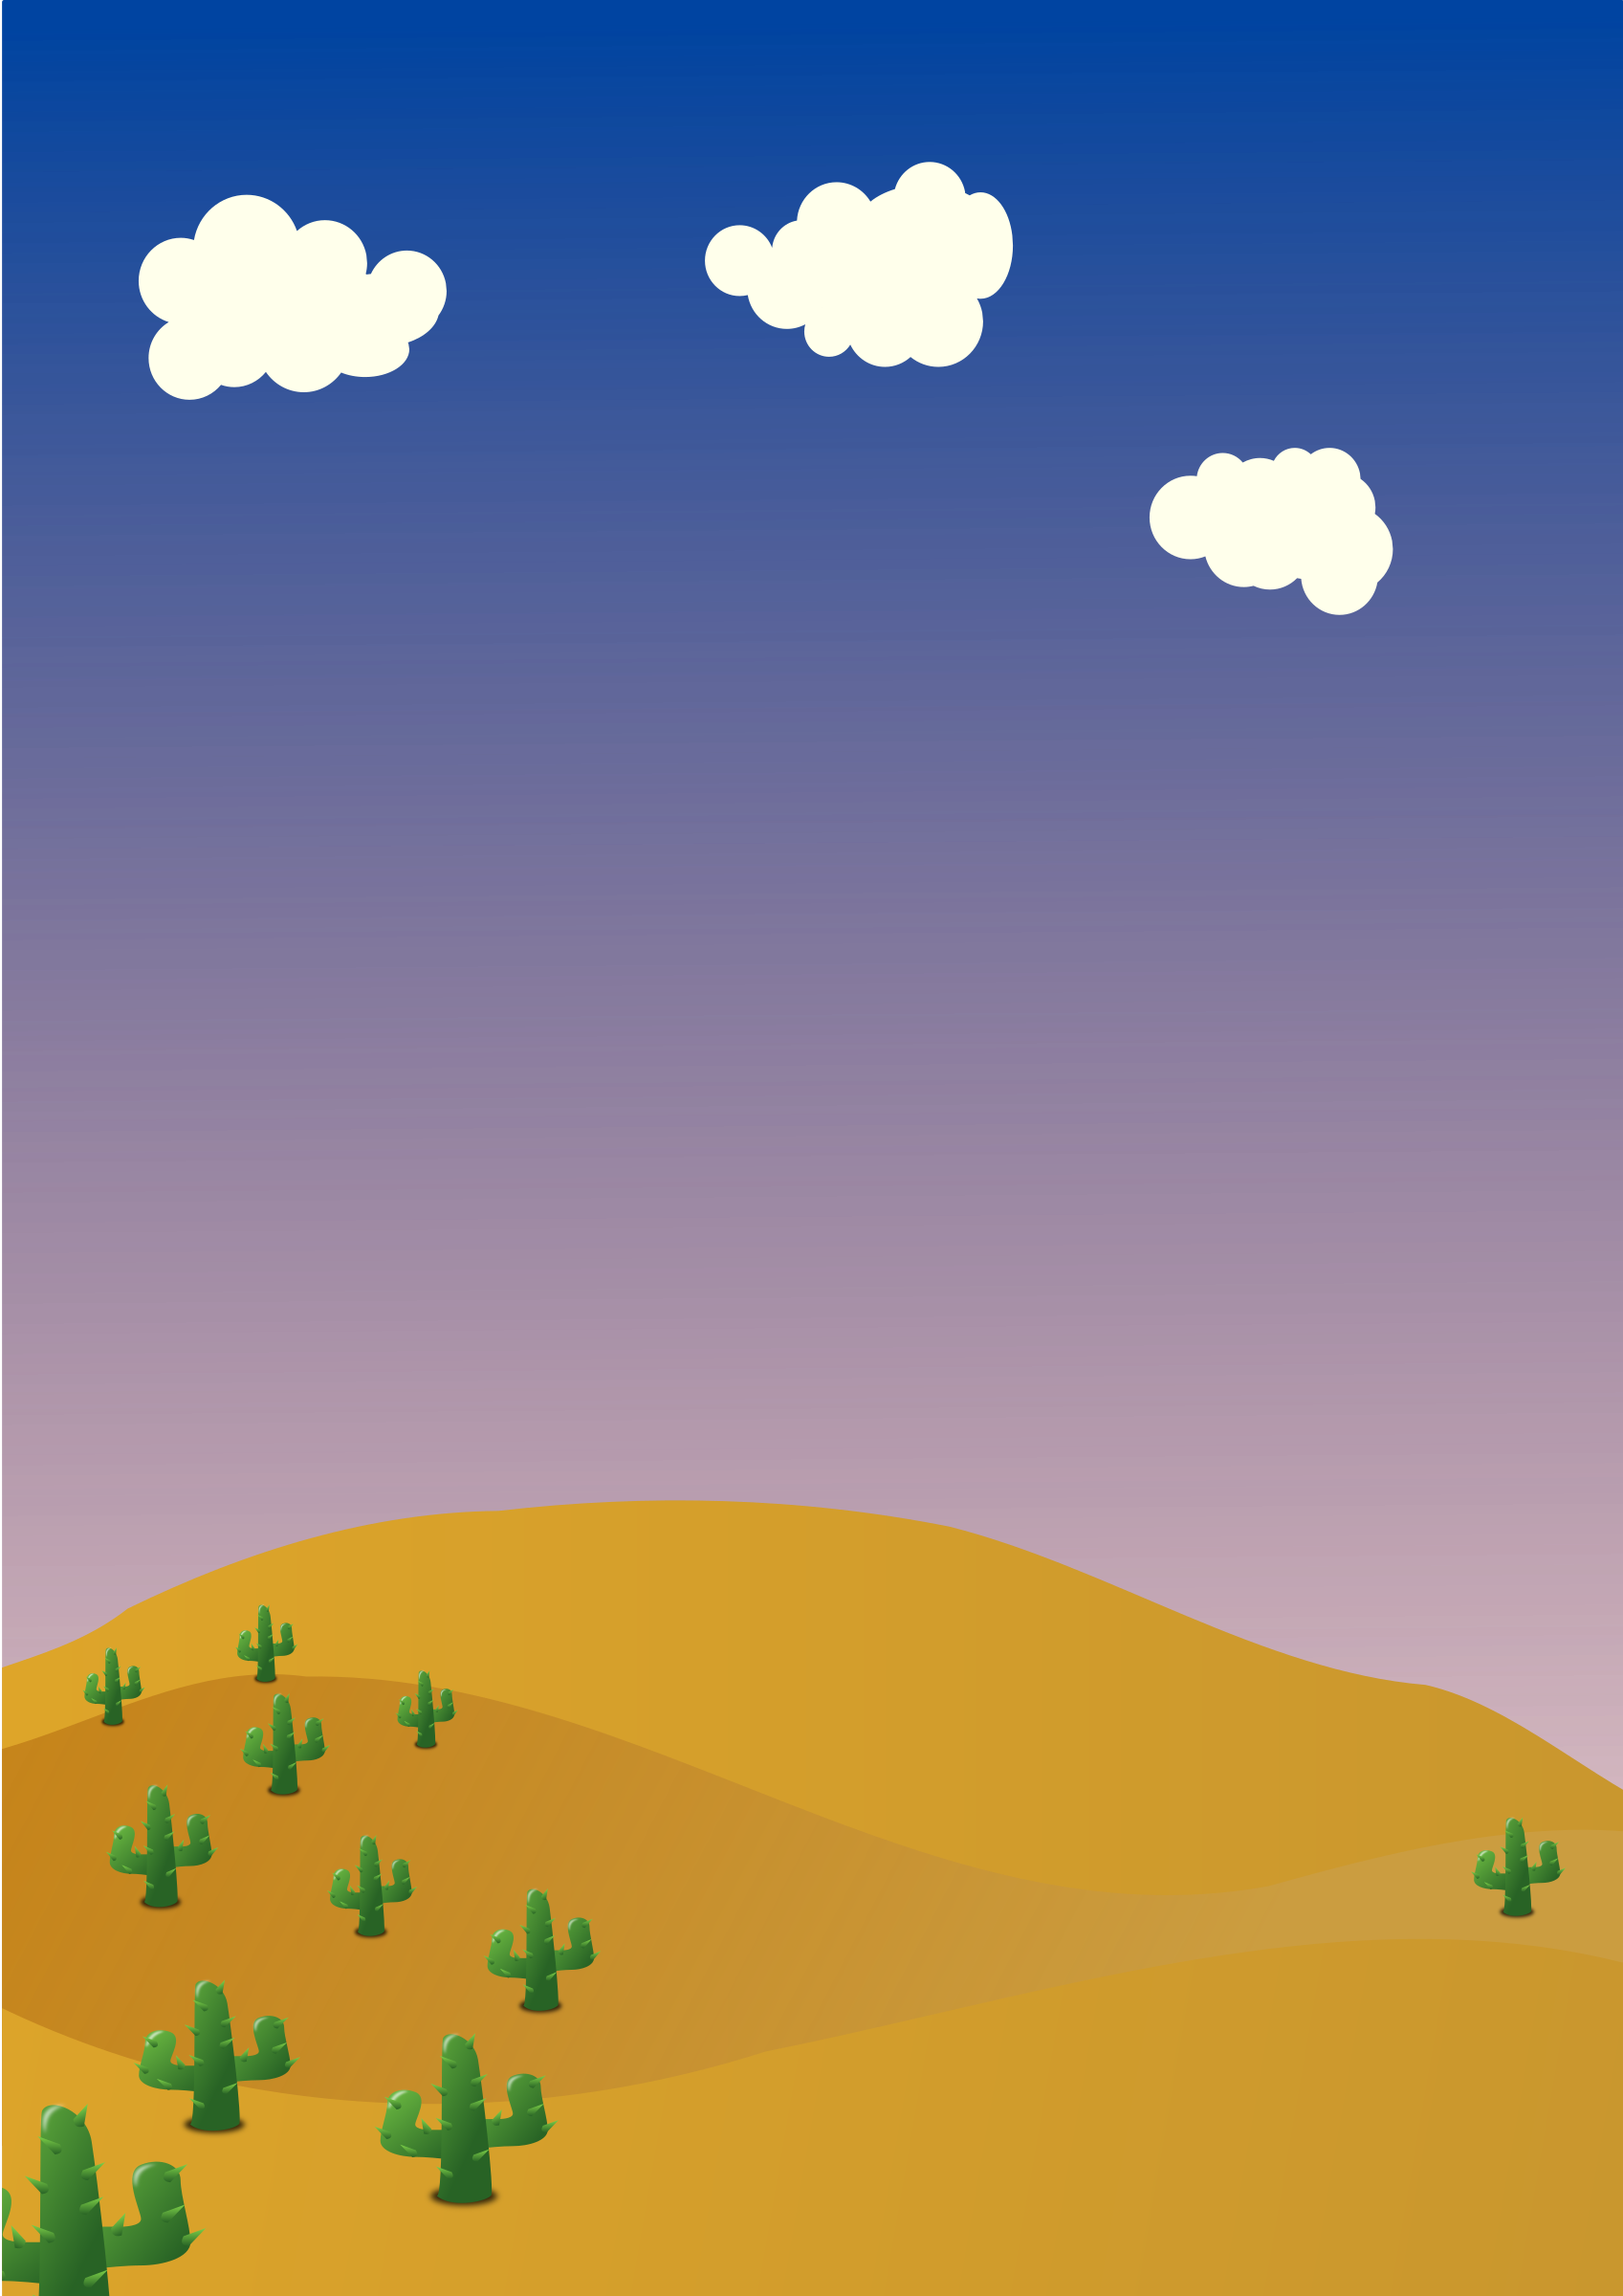 Desert cartoon png. Background icons free and